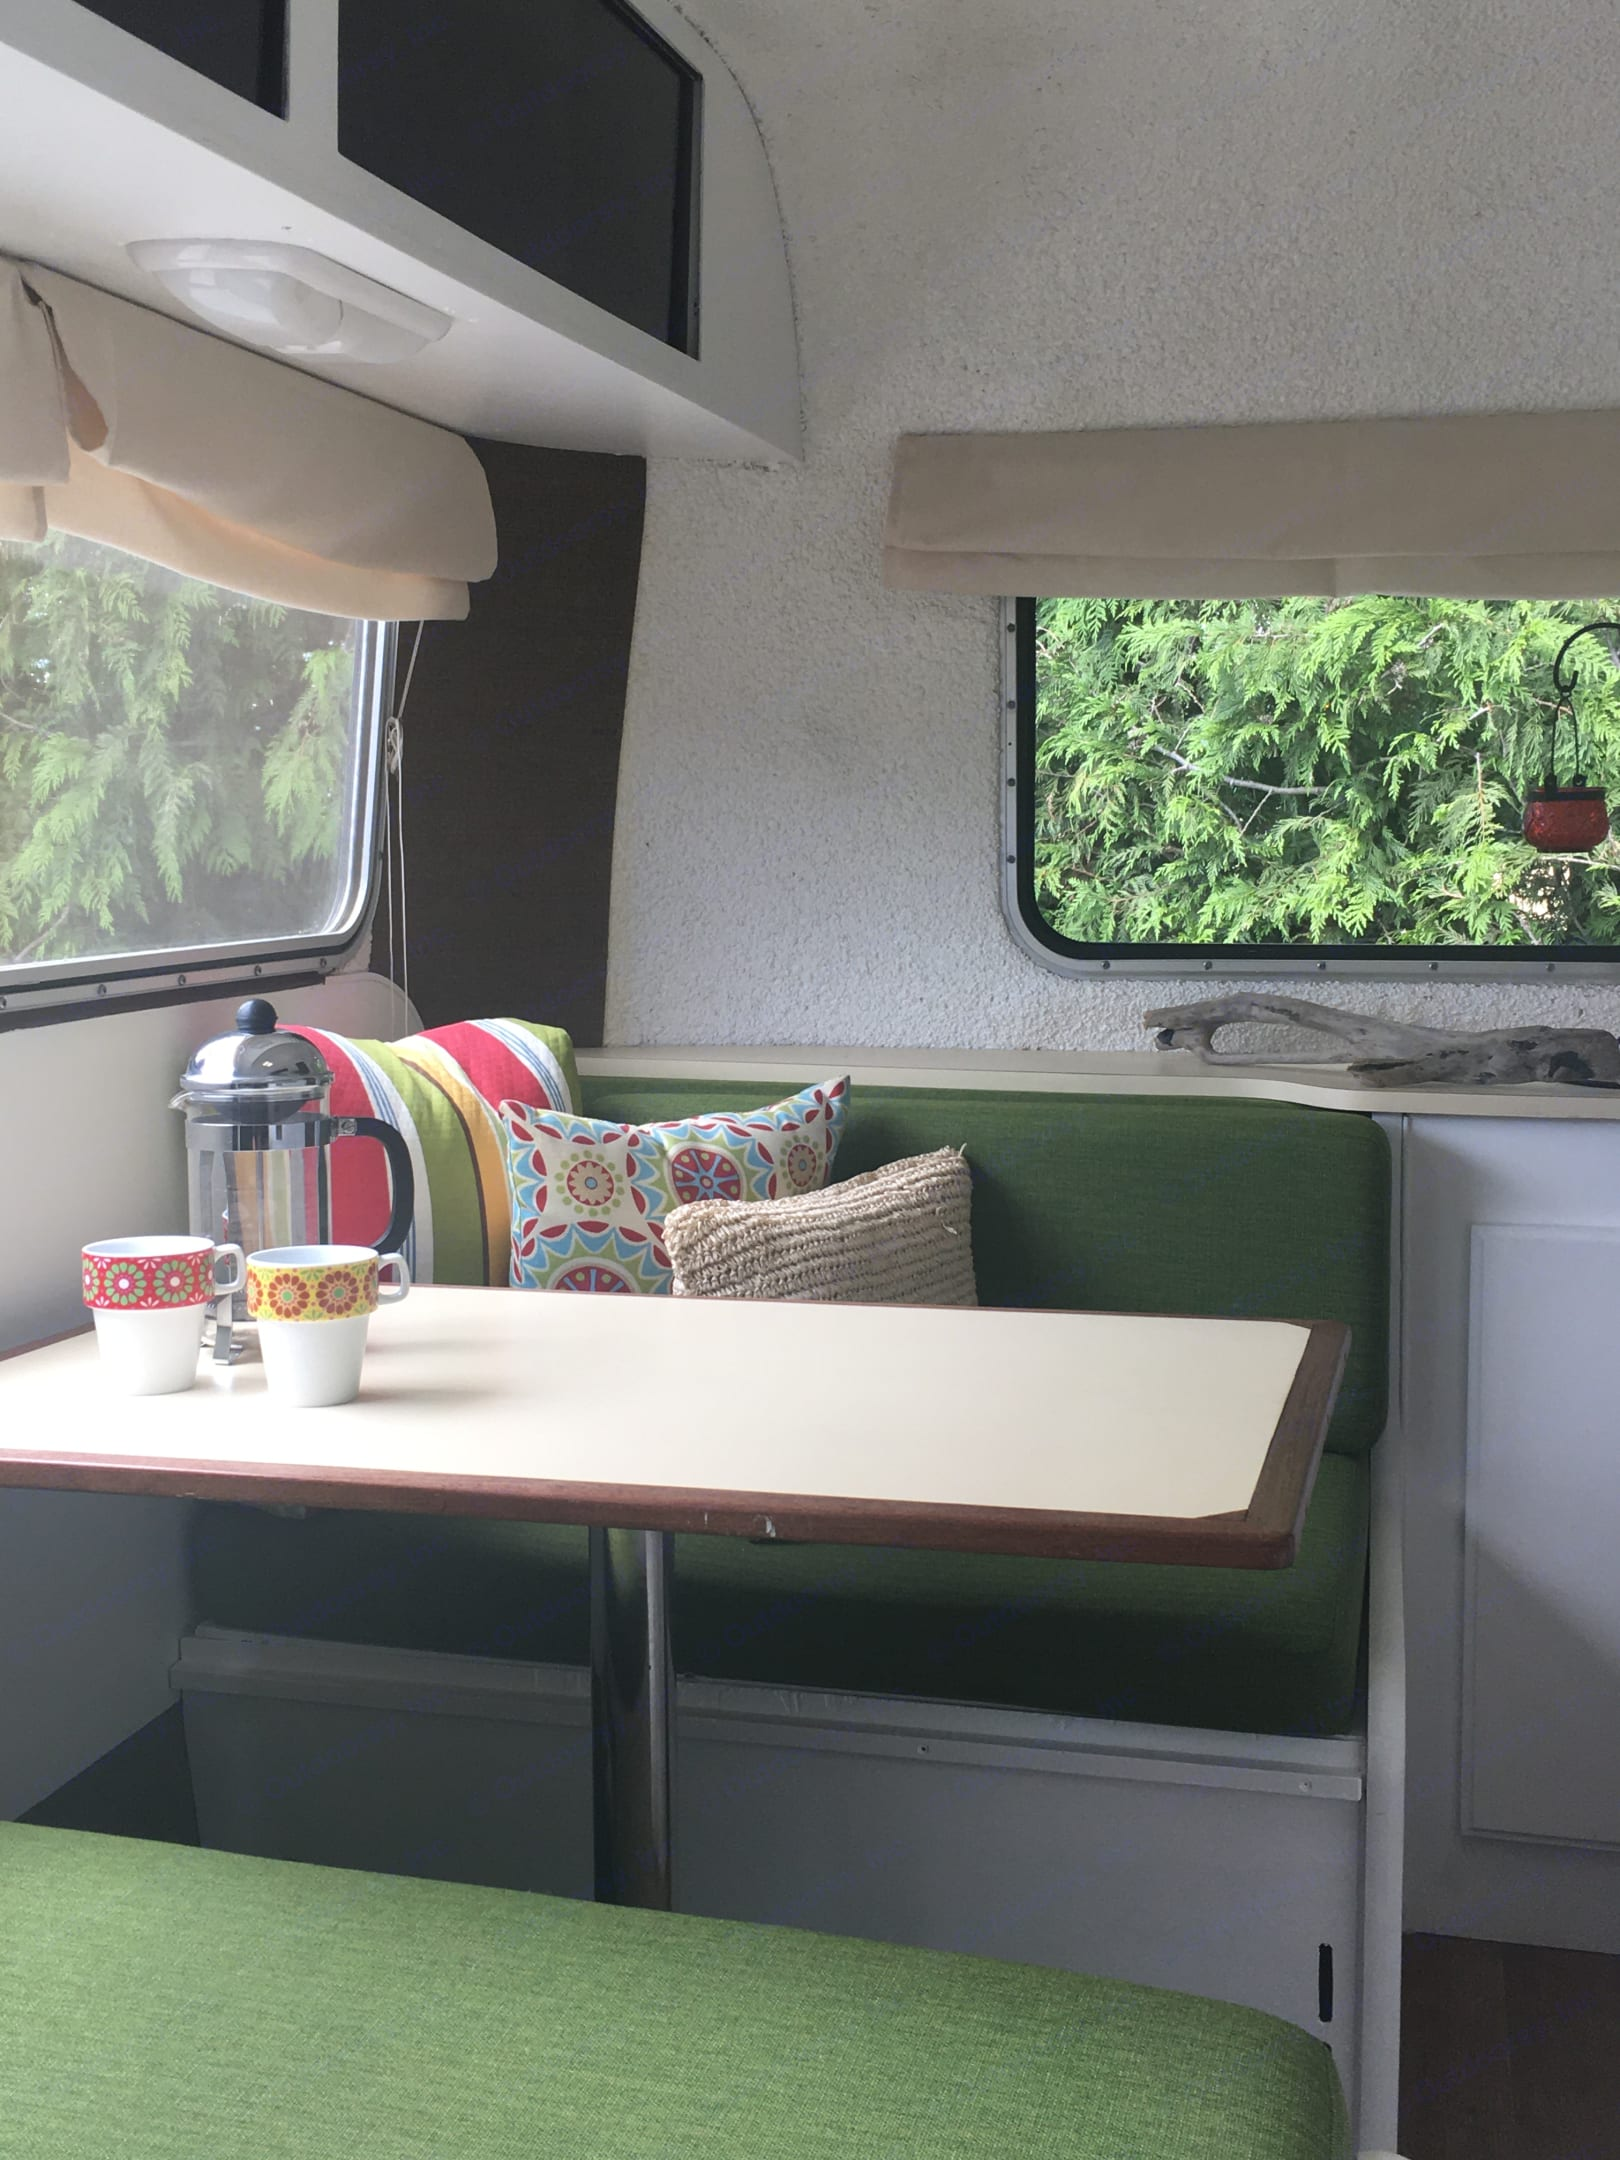 Morning coffee coming right up!. Vintage Trailers Other 1980